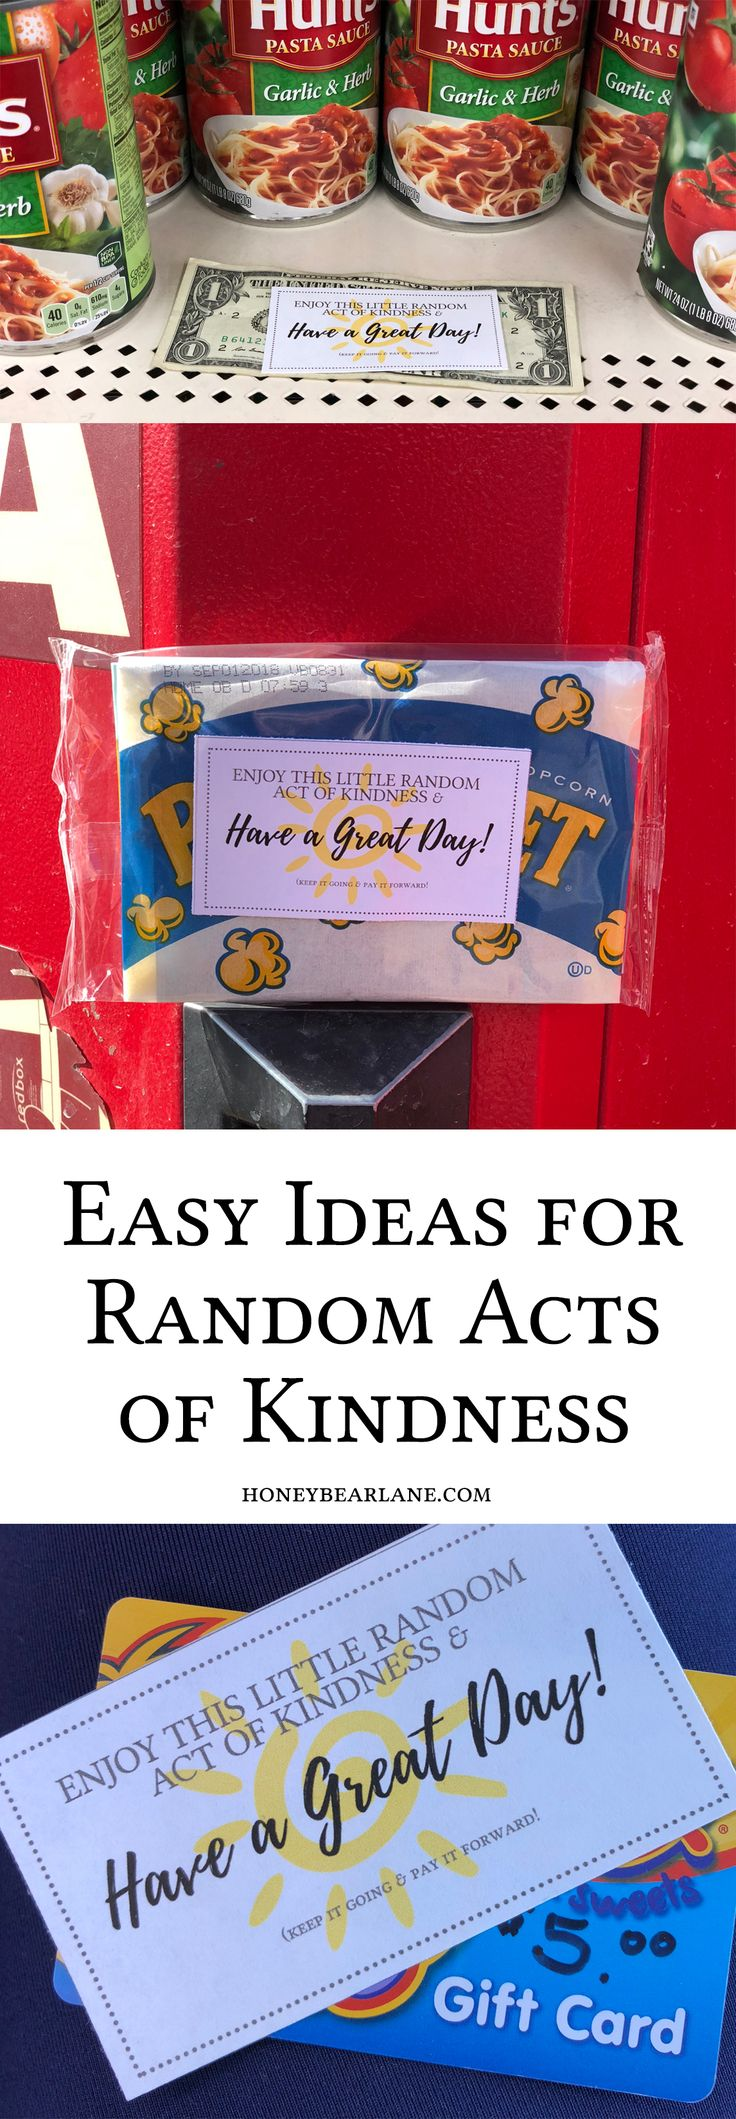 Random Acts of Kindness Ideas for Random Acts of Kindness Day! #ad #showlovewithpampers